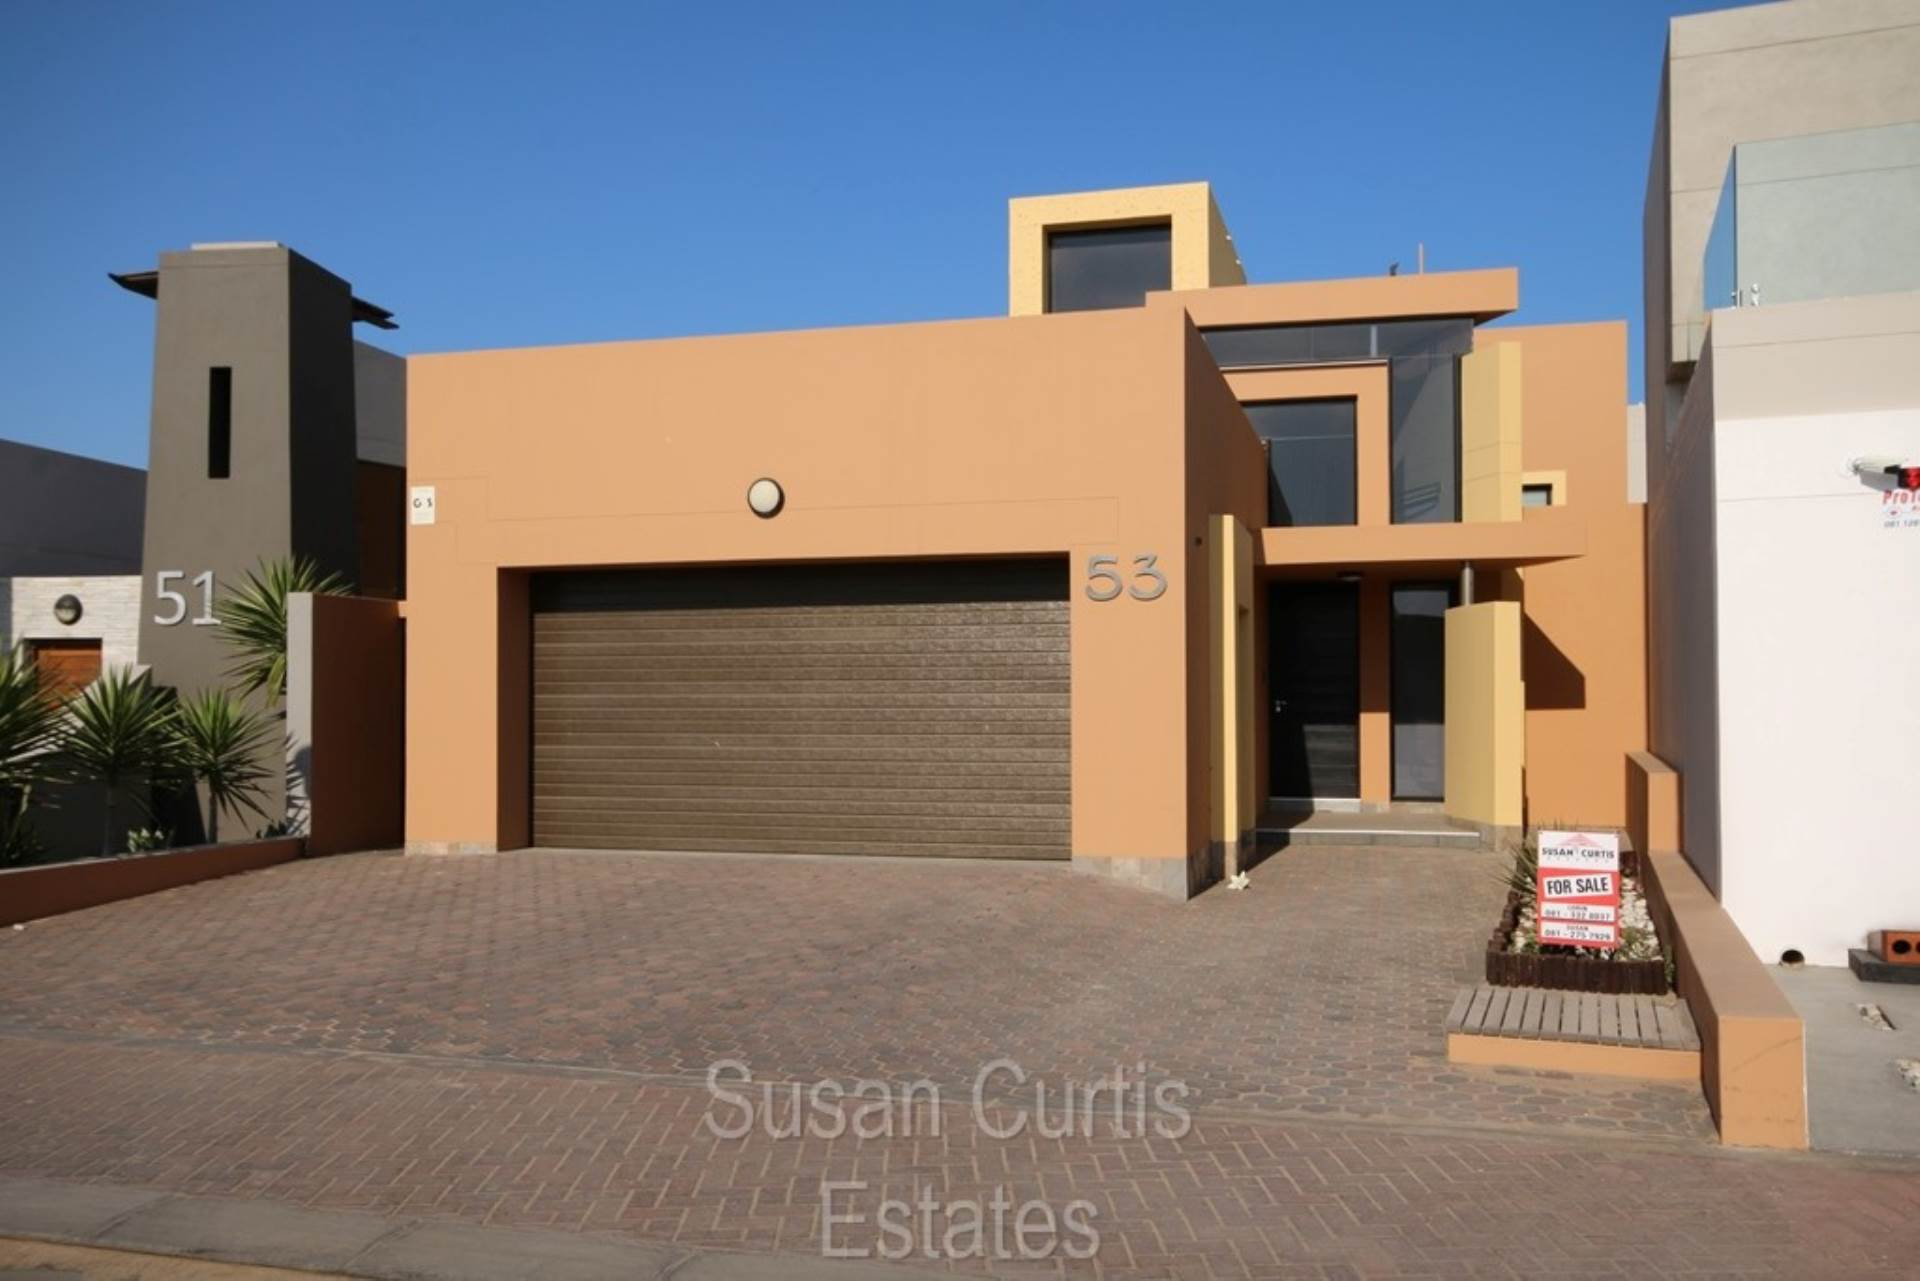 House sold in long beach long beach namibia for nam